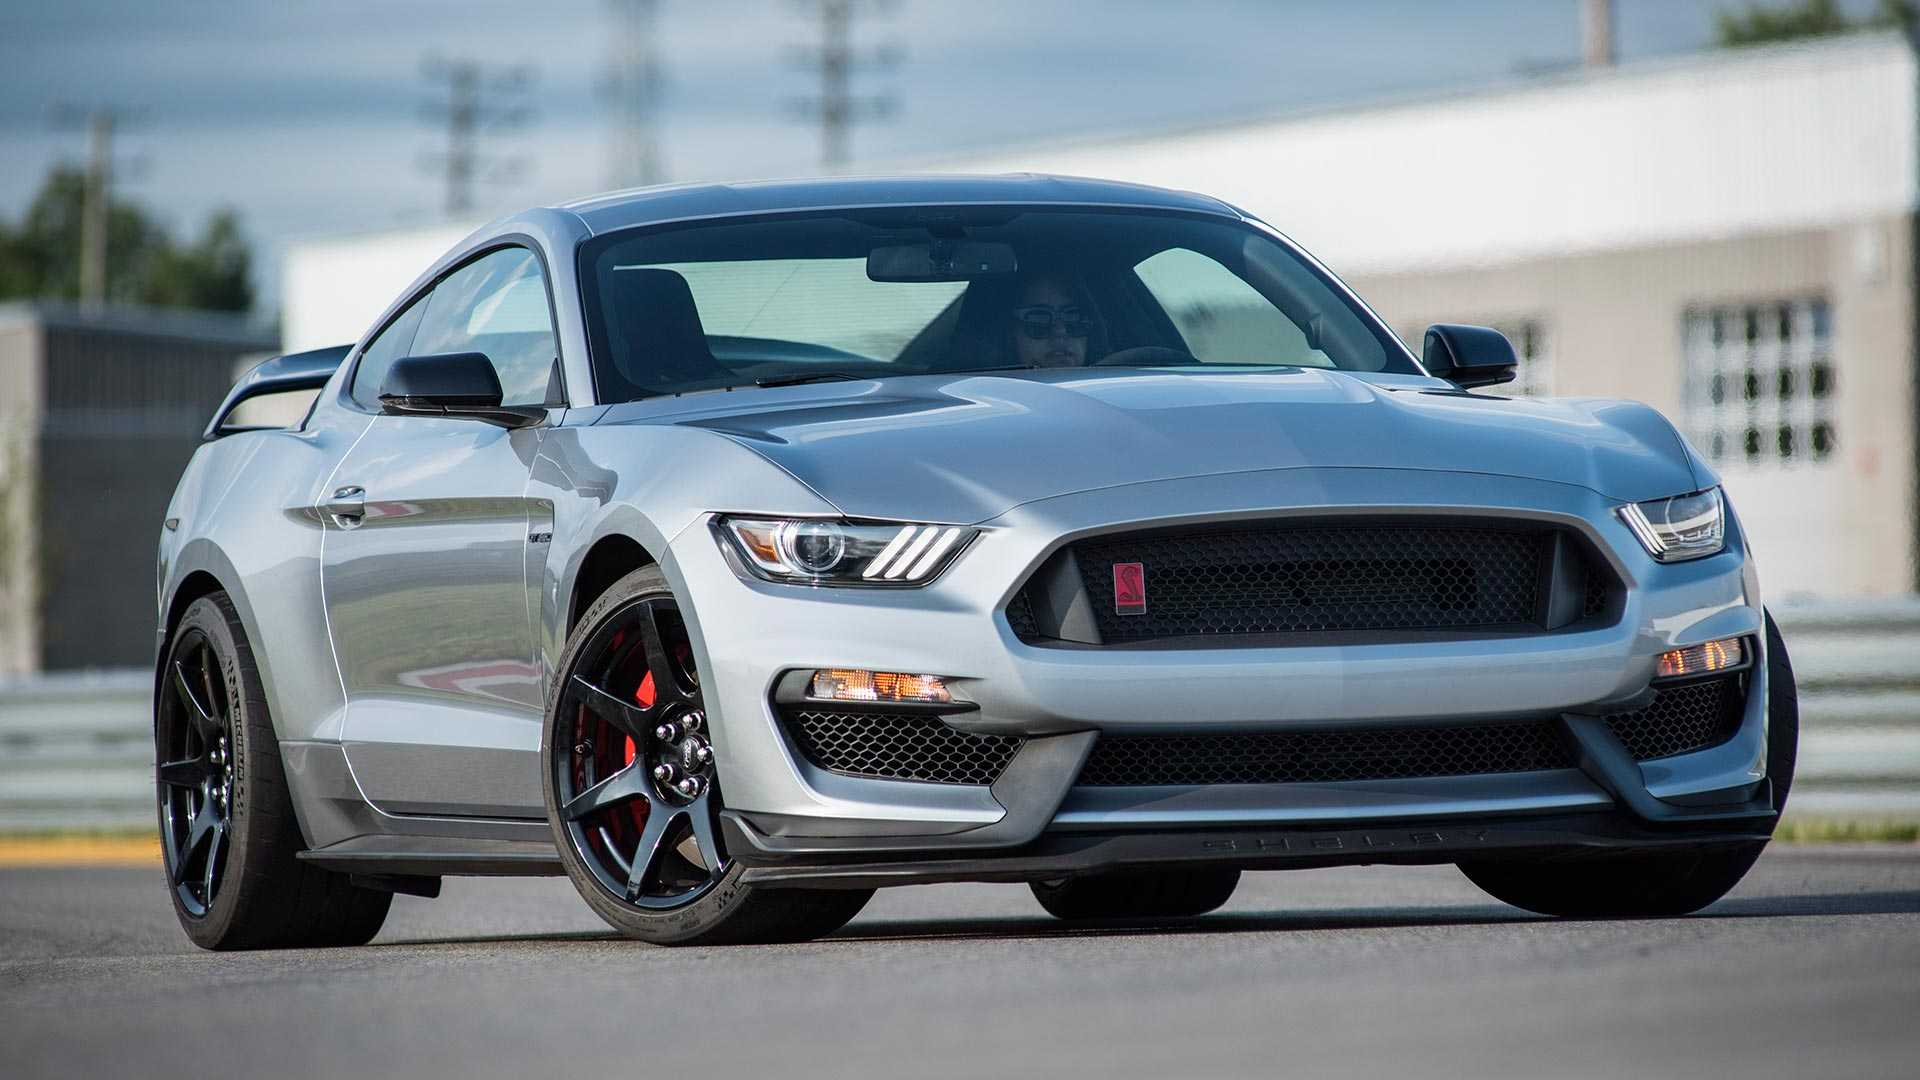 2020 Ford Mustang Shelby GT350 Coupe Reliability and Recalls | CarIndigo.com